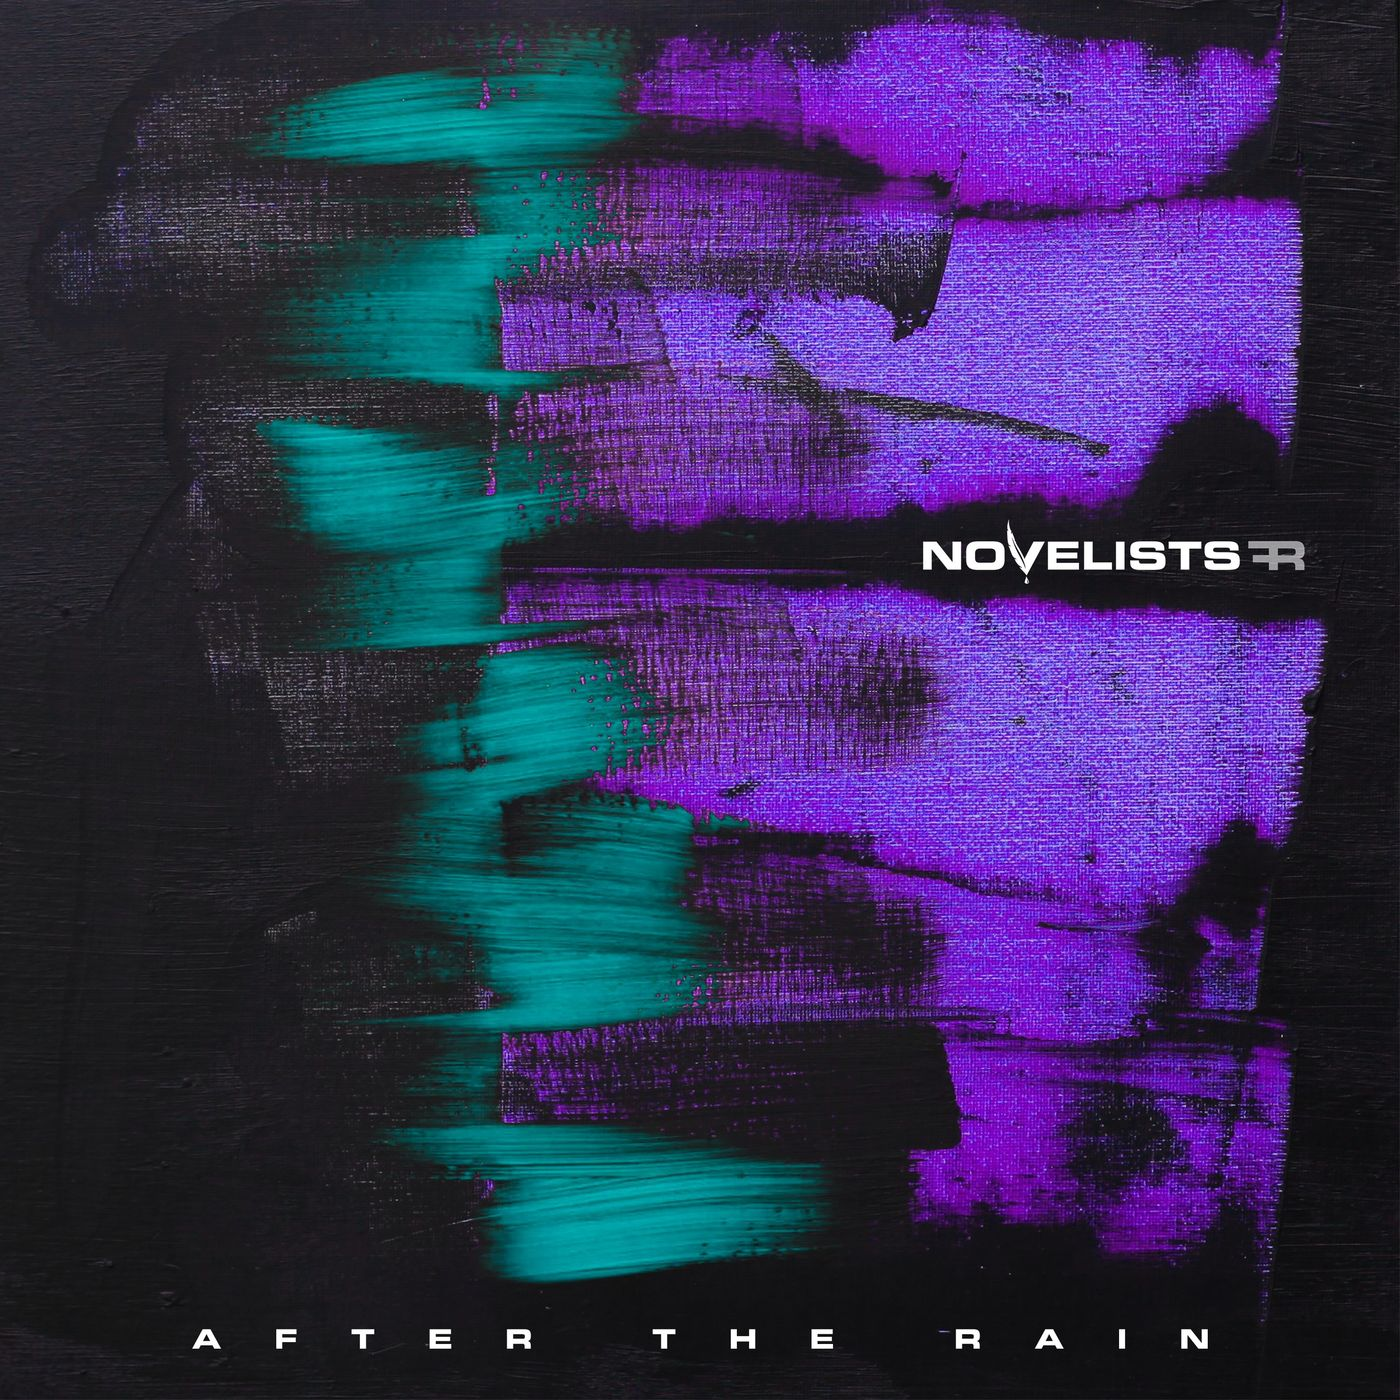 Novelists FR - After the Rain [single] (2020)